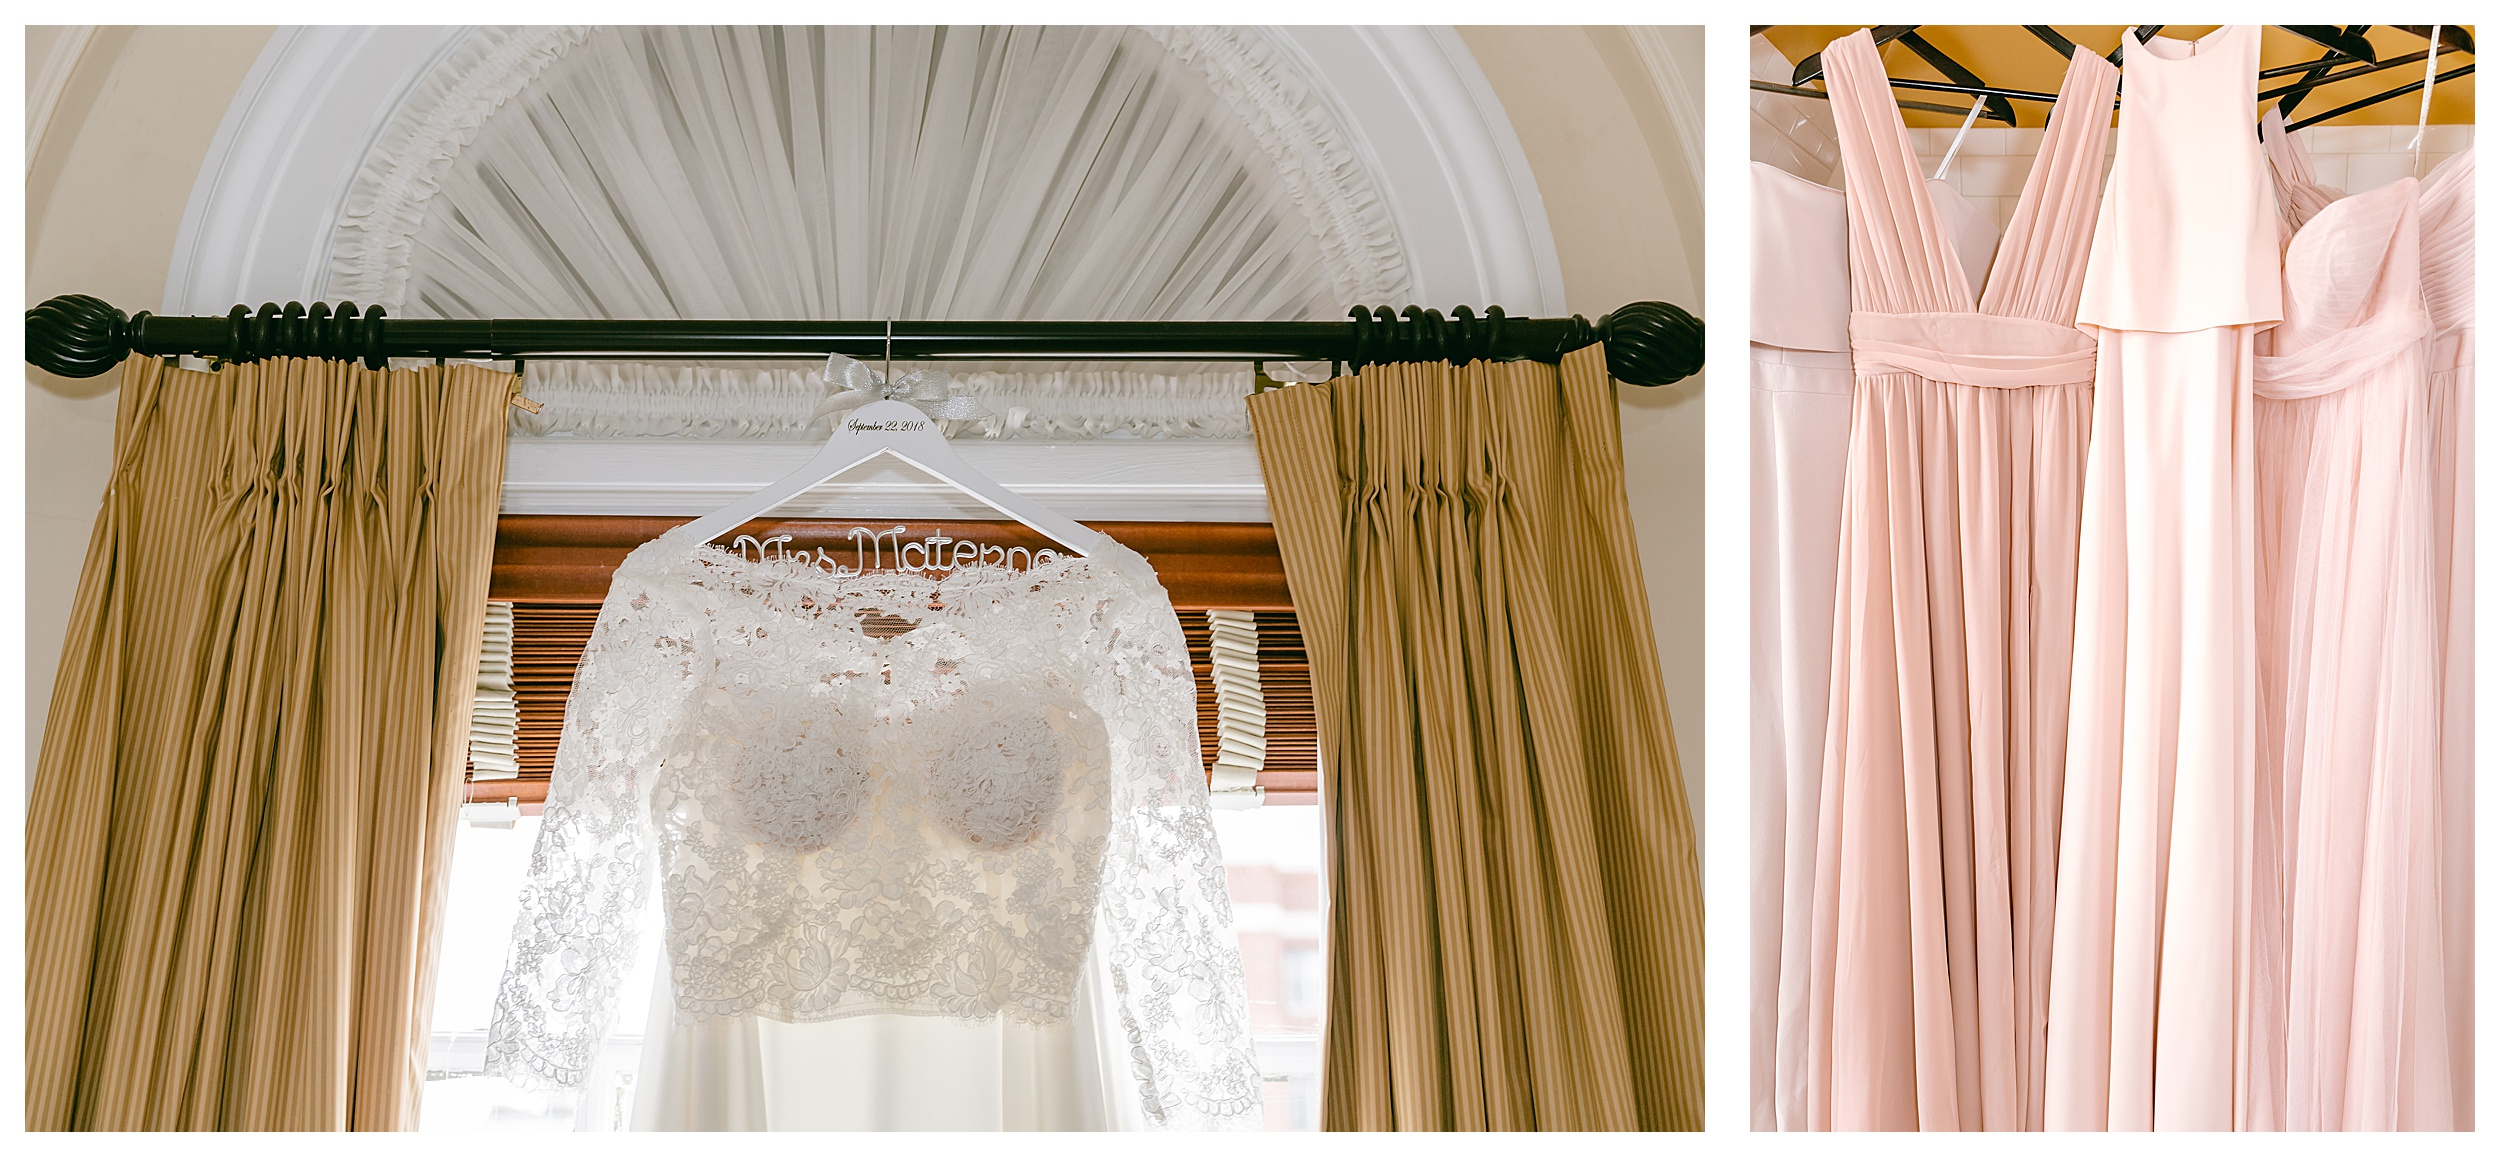 bride's dress and bridesmaid's dresses hanging in a window